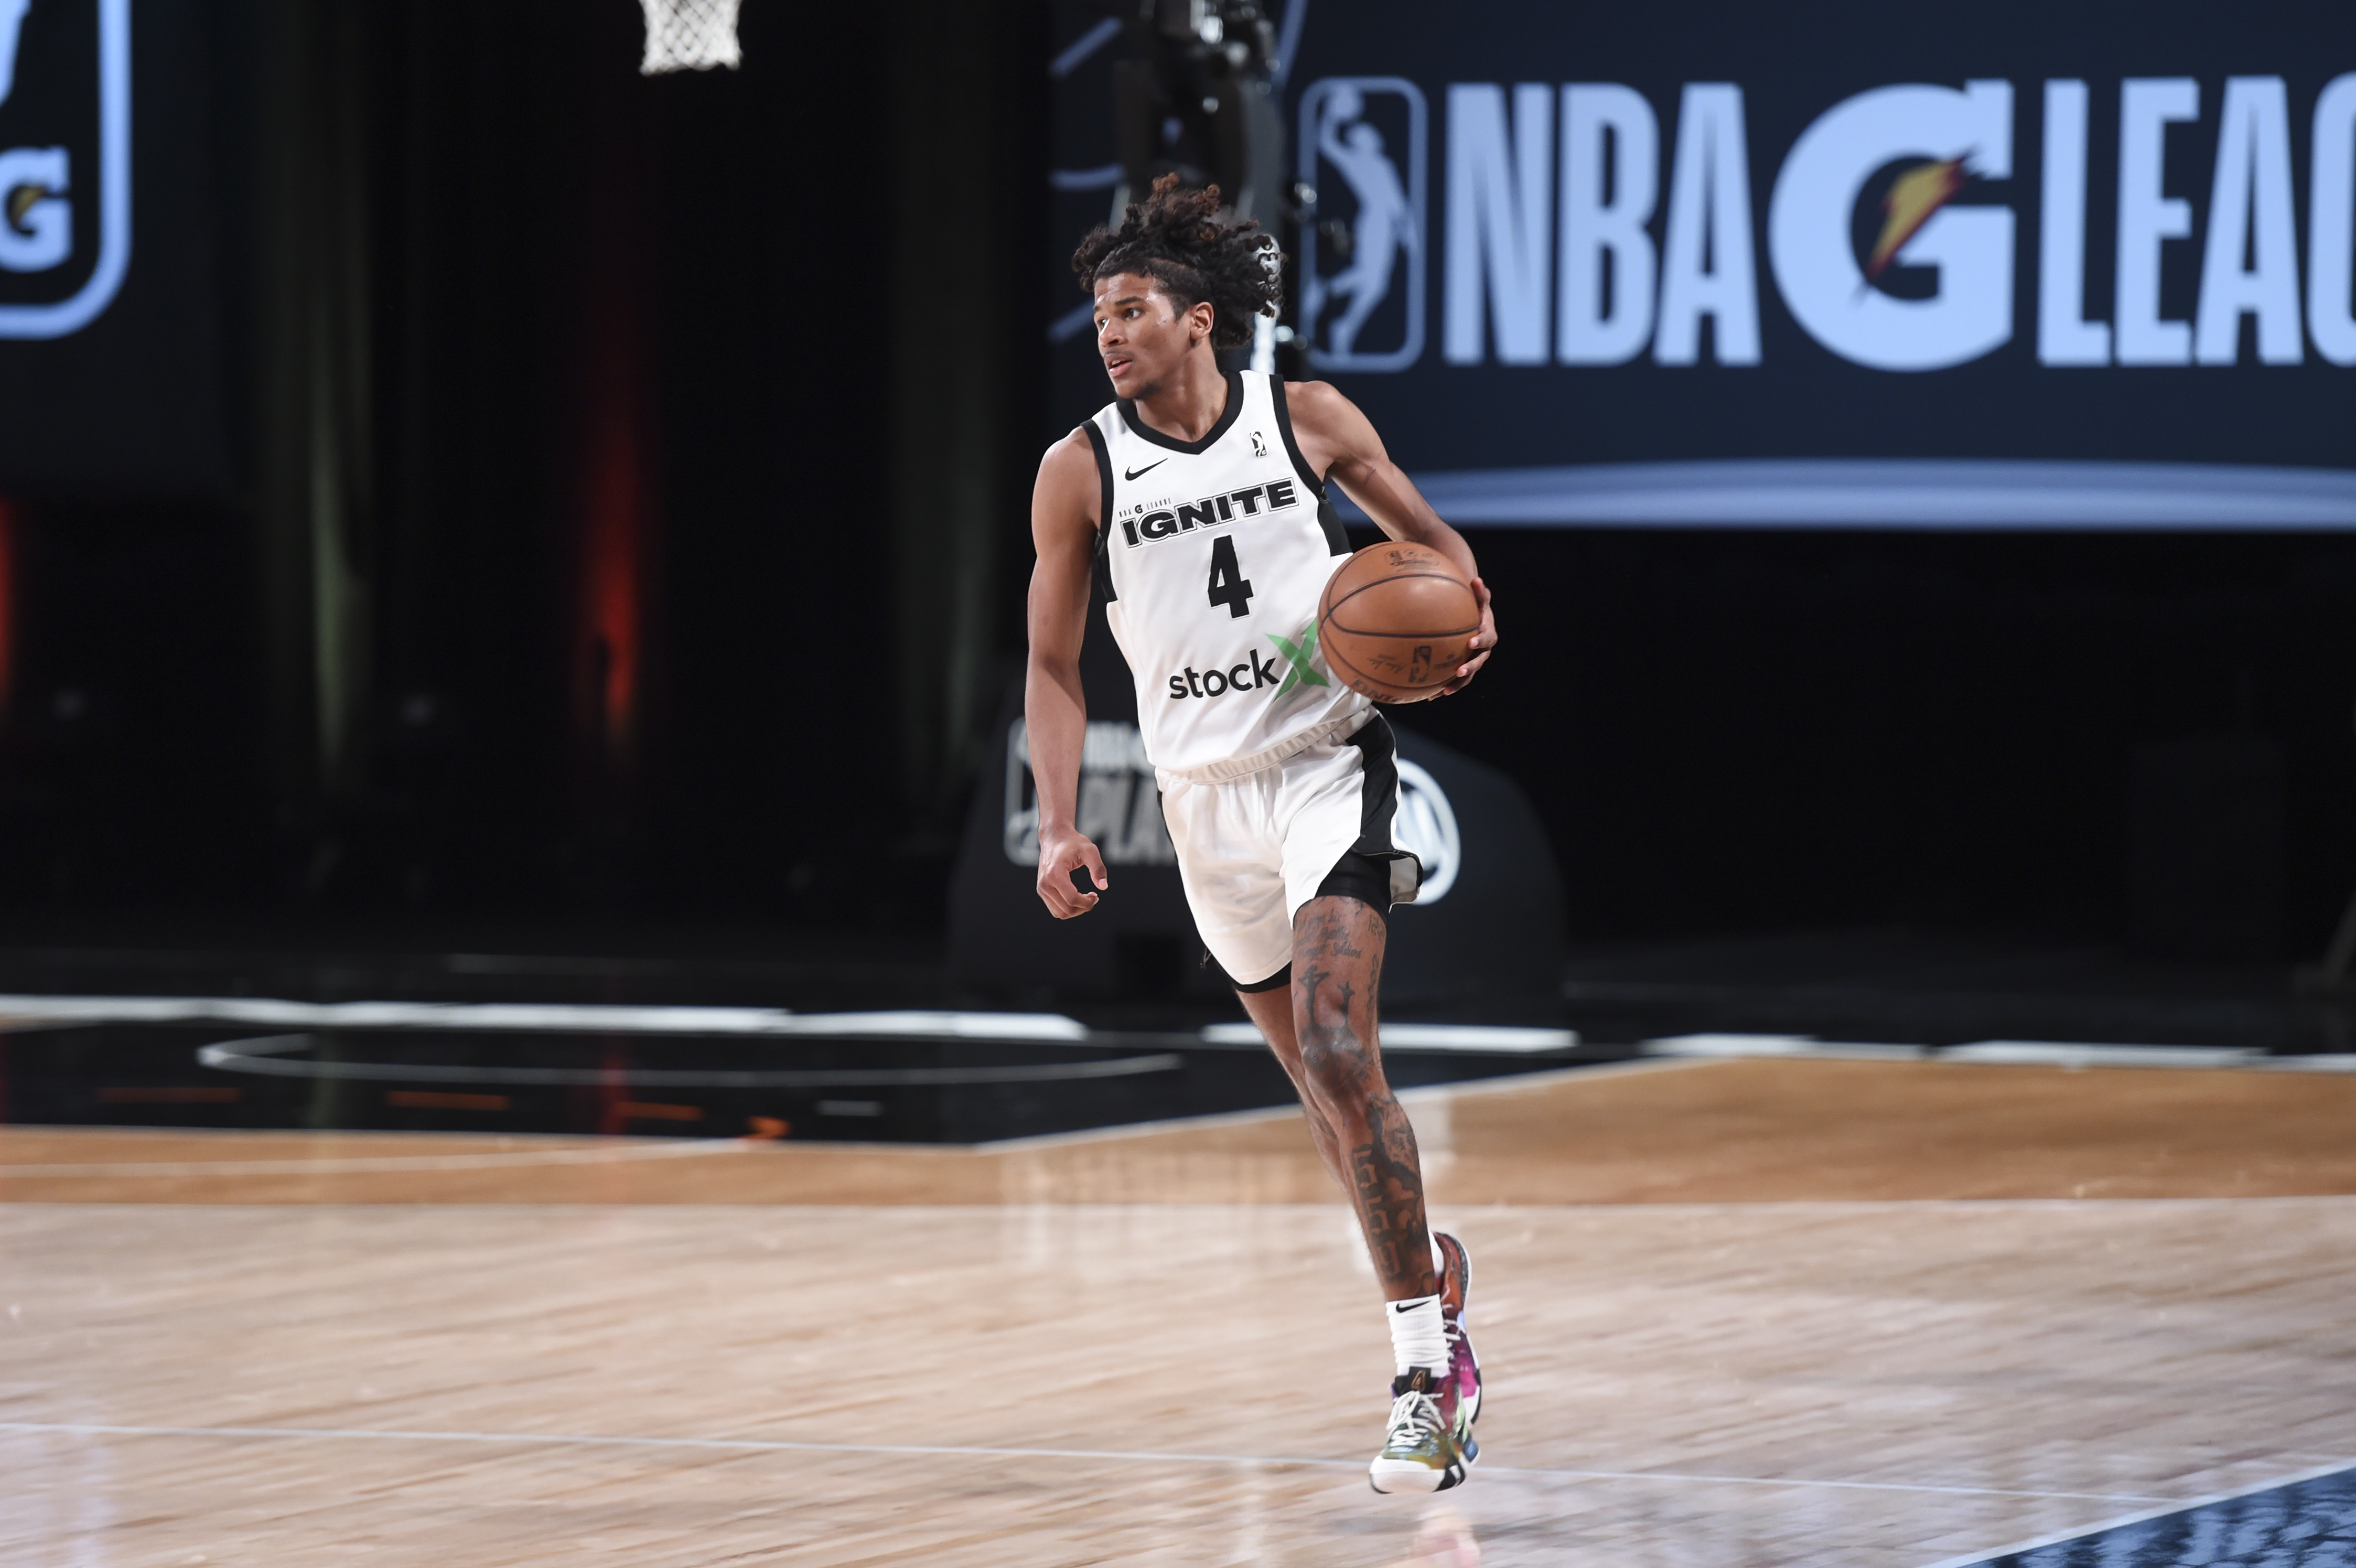 Jalen Green of Team Ignite handles the ball during the game against the Raptors 905 during the NBA G League Playoffs on March 8, 2021 at AdventHealth Arena in Orlando, Florida.